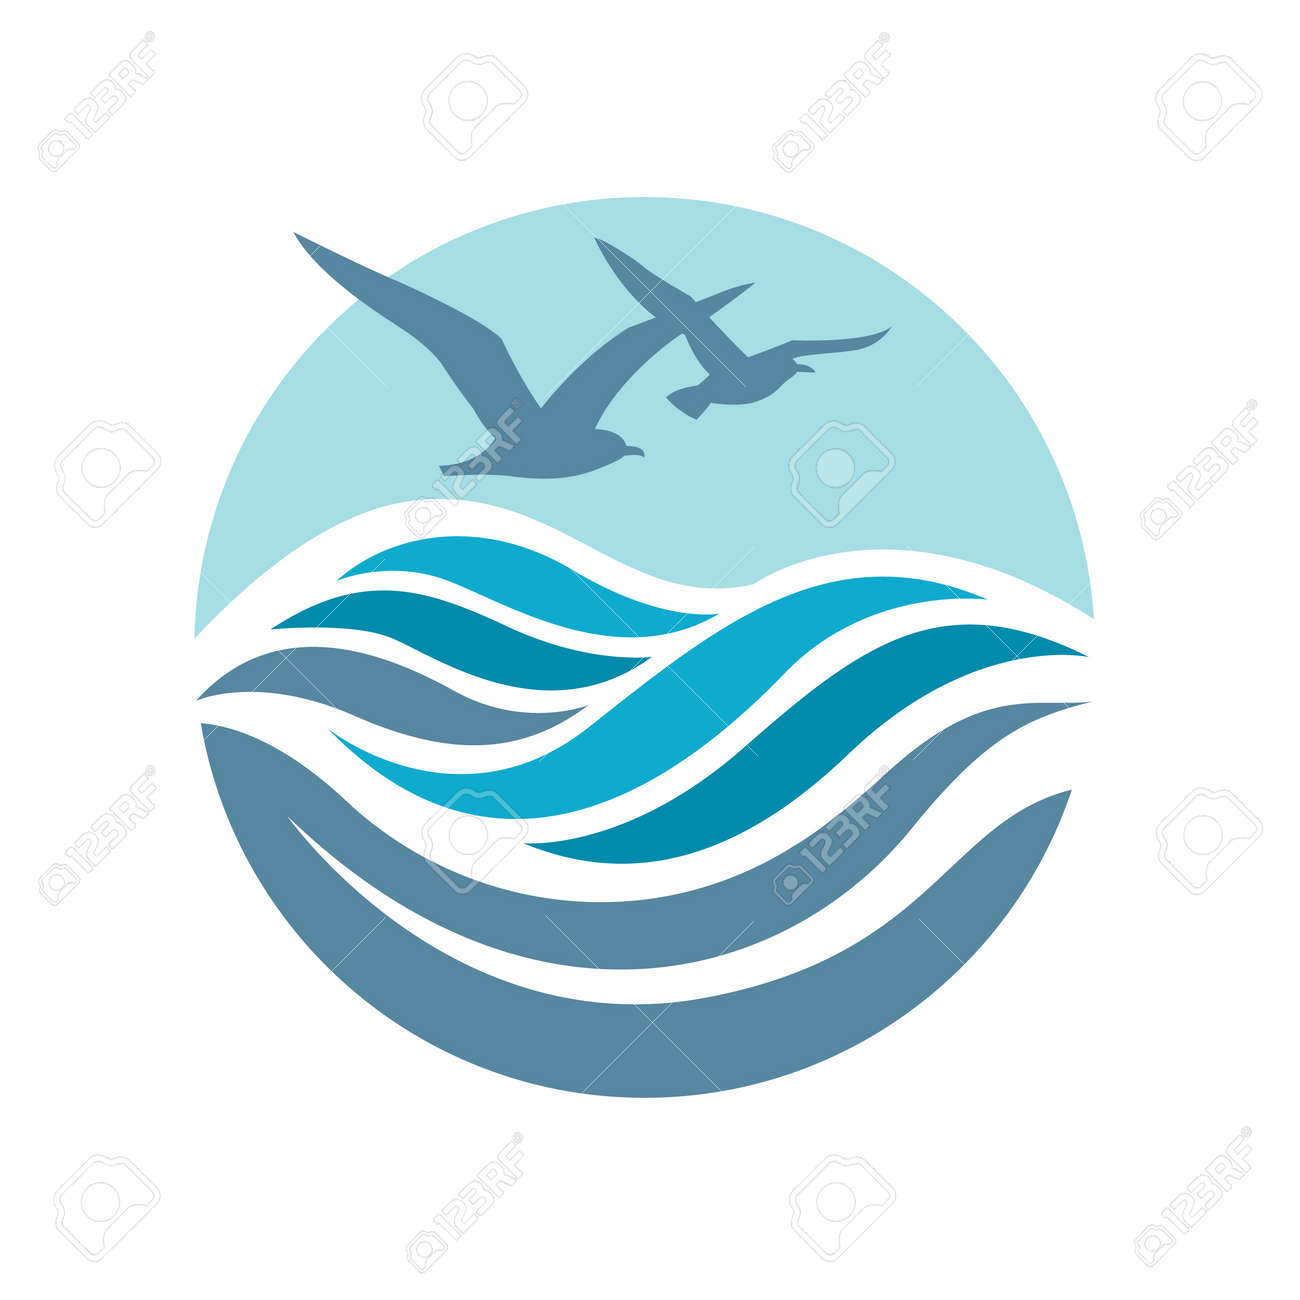 abstract design of ocean logo with waves and seagulls royalty free rh 123rf com ocean logo inspiration ocean logo inspiration